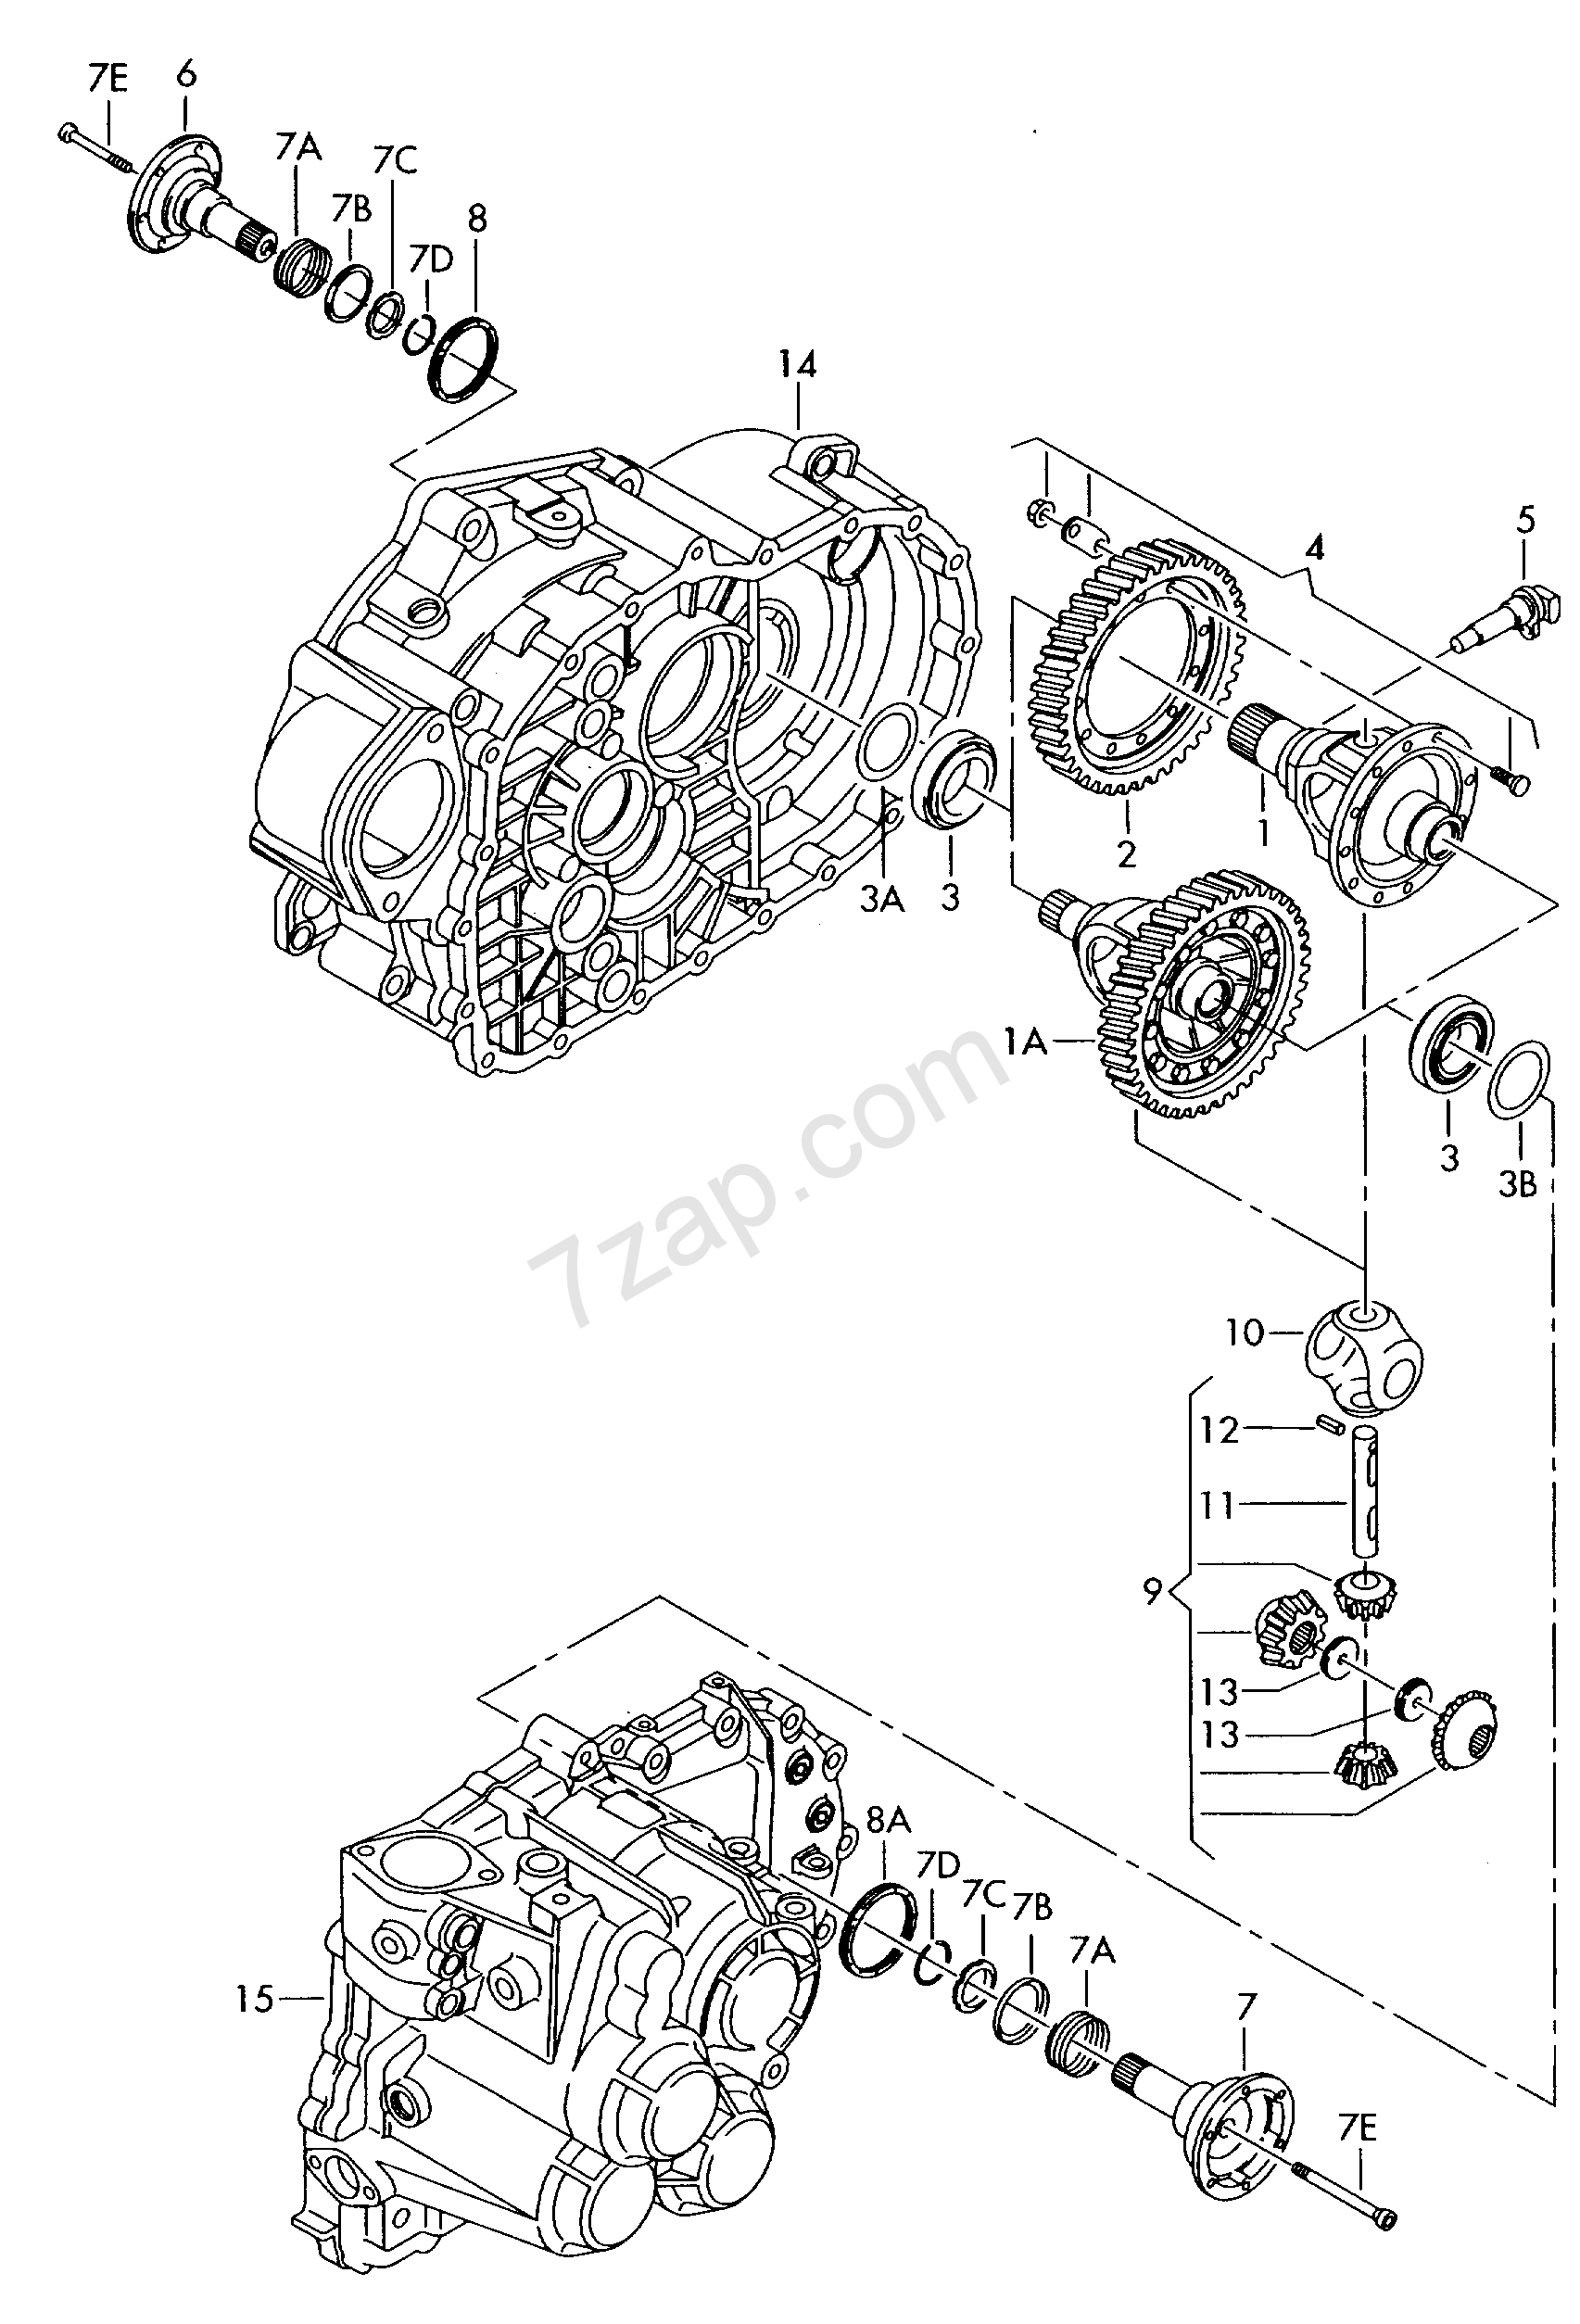 differential; output gear; 6-speed manual transmis